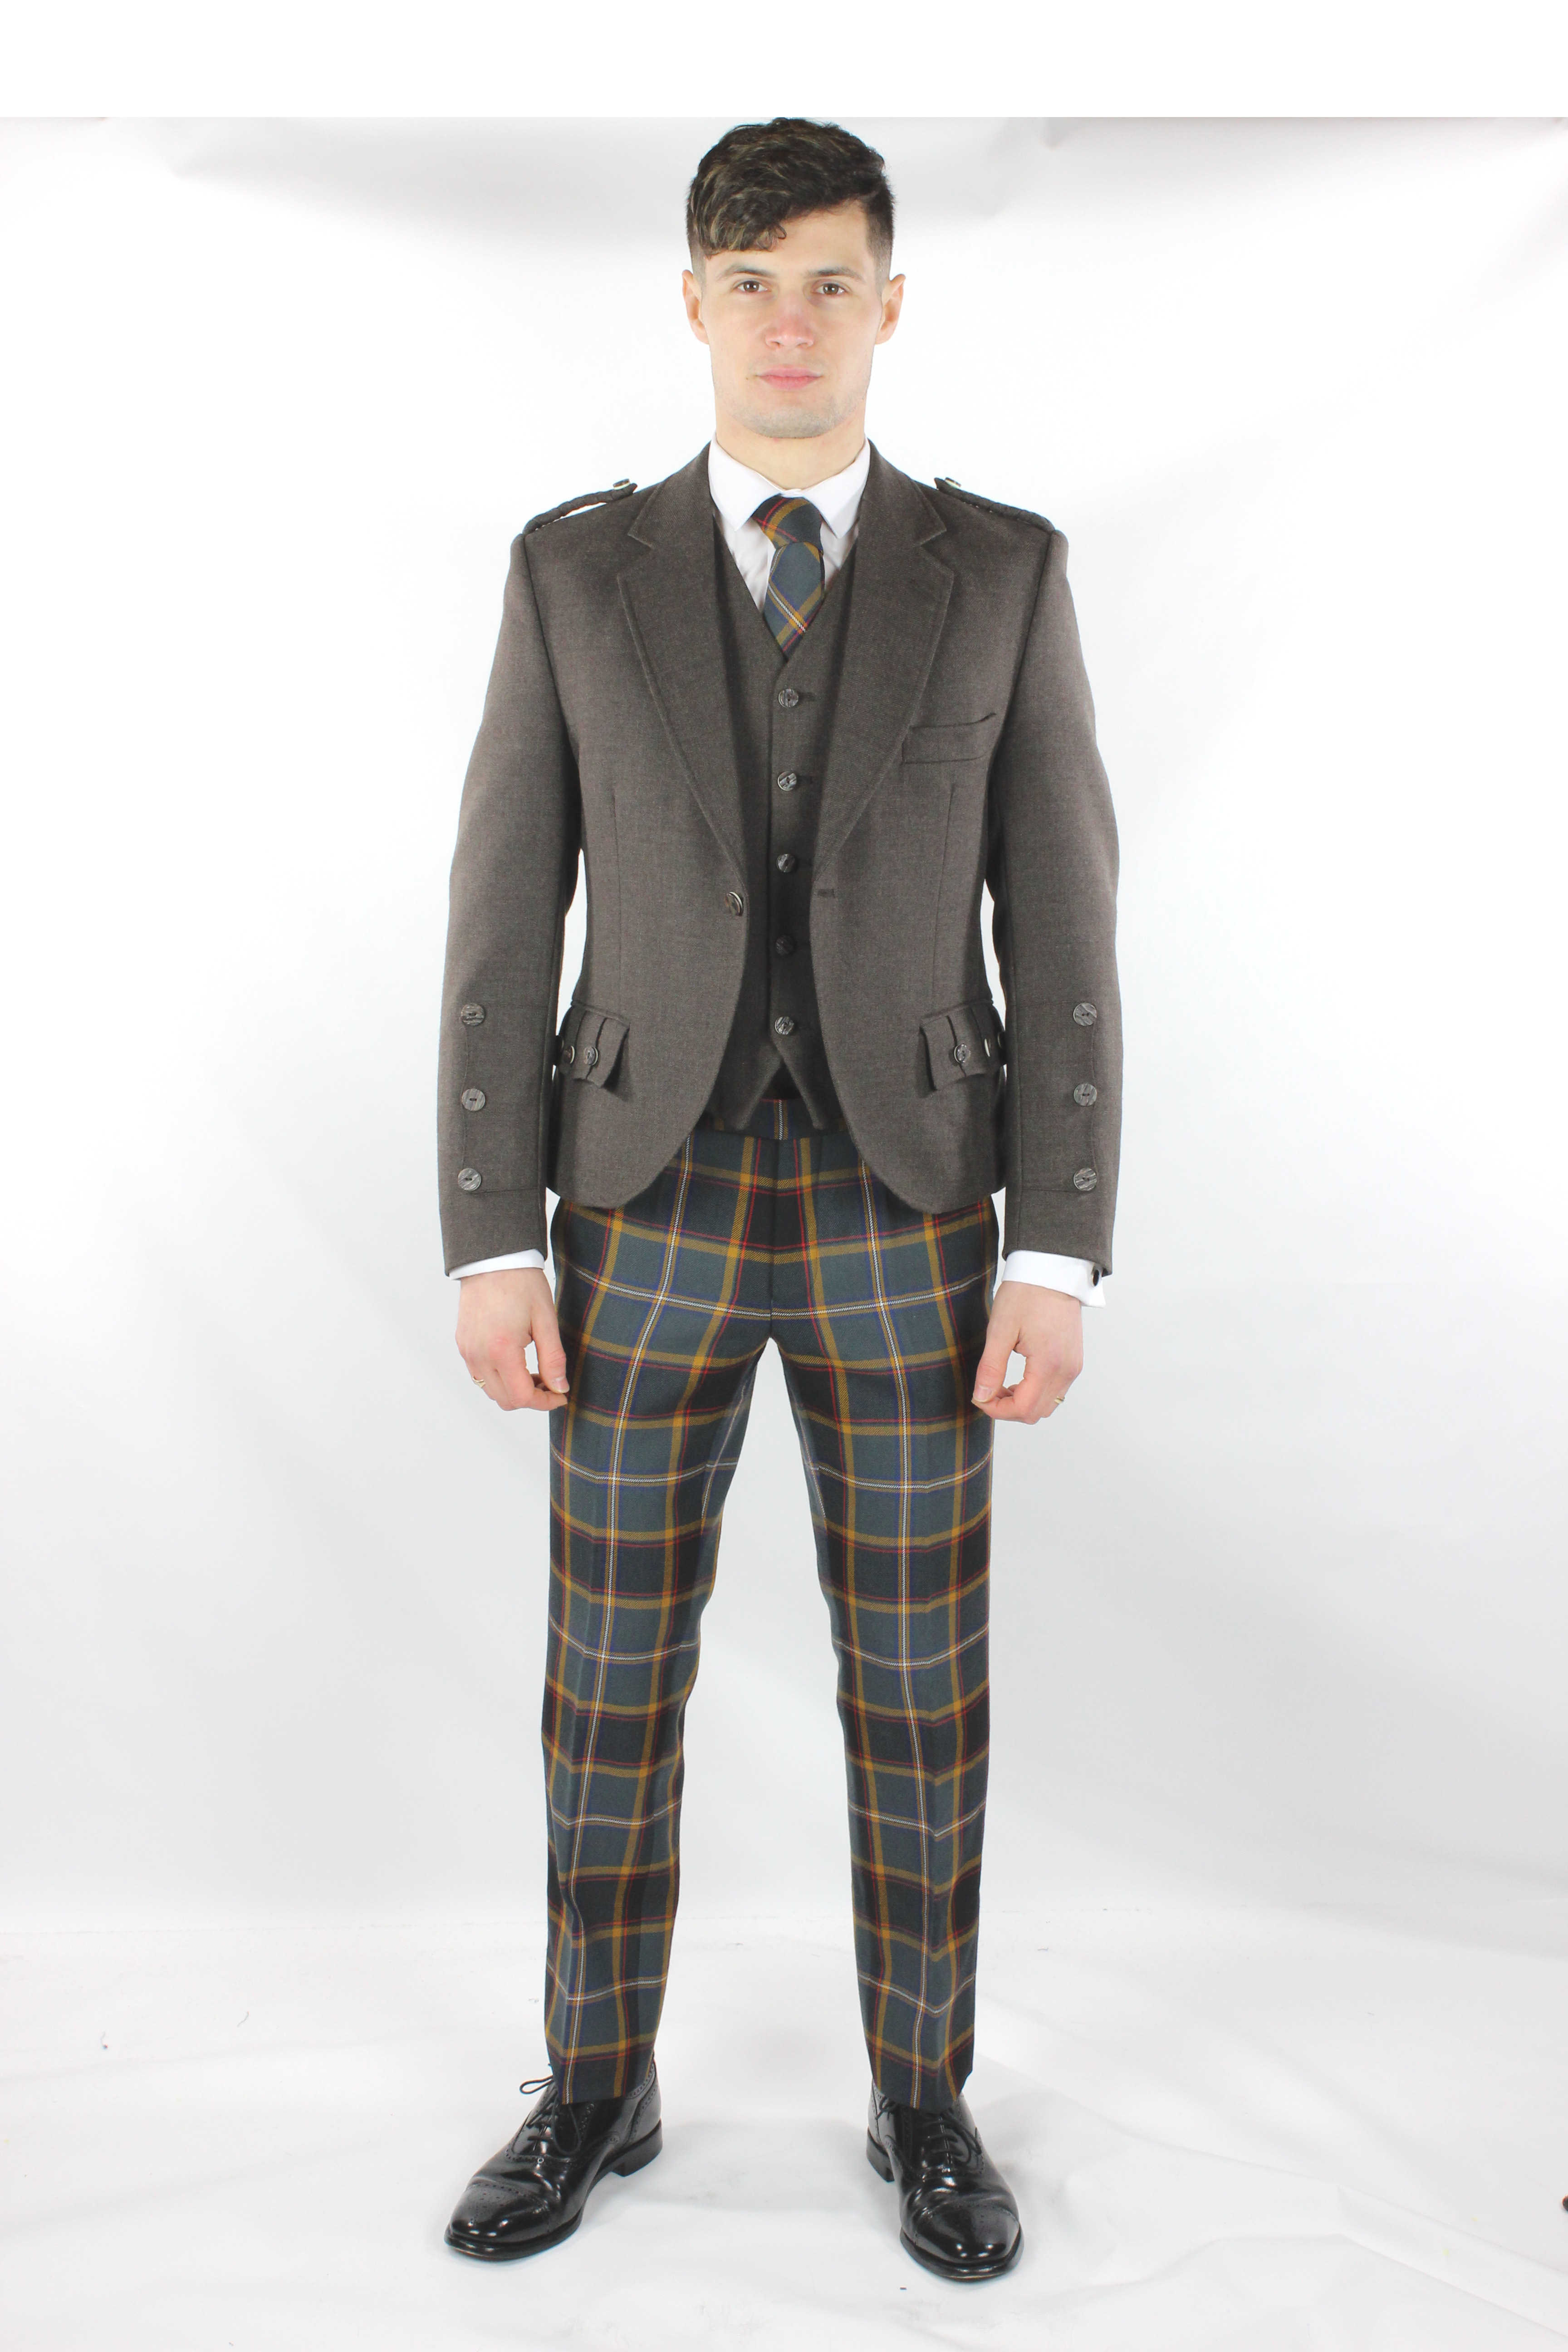 Tartan Trousers Outfit